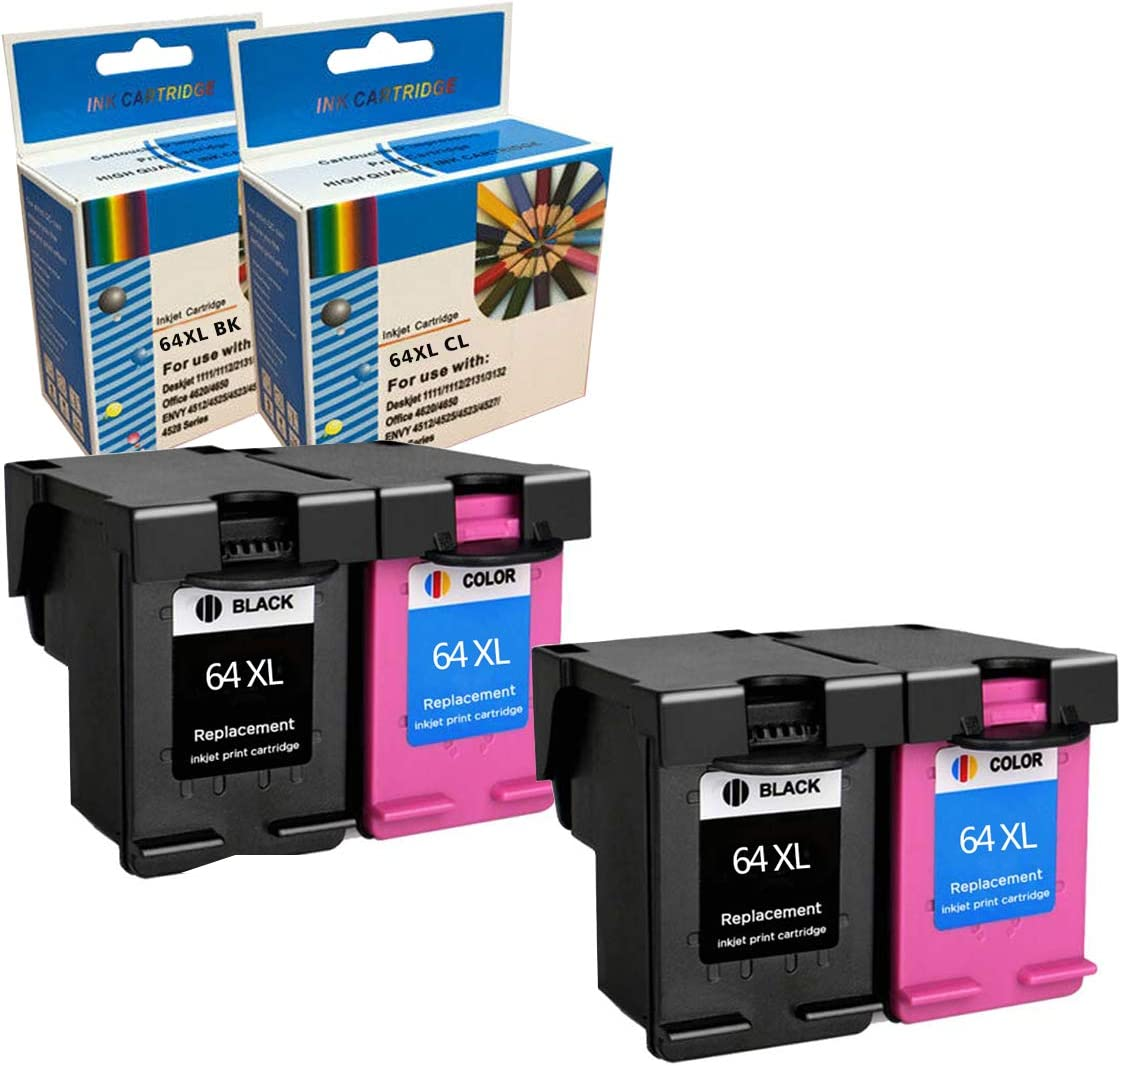 7158 7155 7120 7130 6252 7164 6255 7858 7855 6232 2 Black+2 Color, 4 Pack 6258 7820 7800 M-online Re-Manufactured Ink Cartridge Replacement for HP 64XL Envy Photo 6220 6230